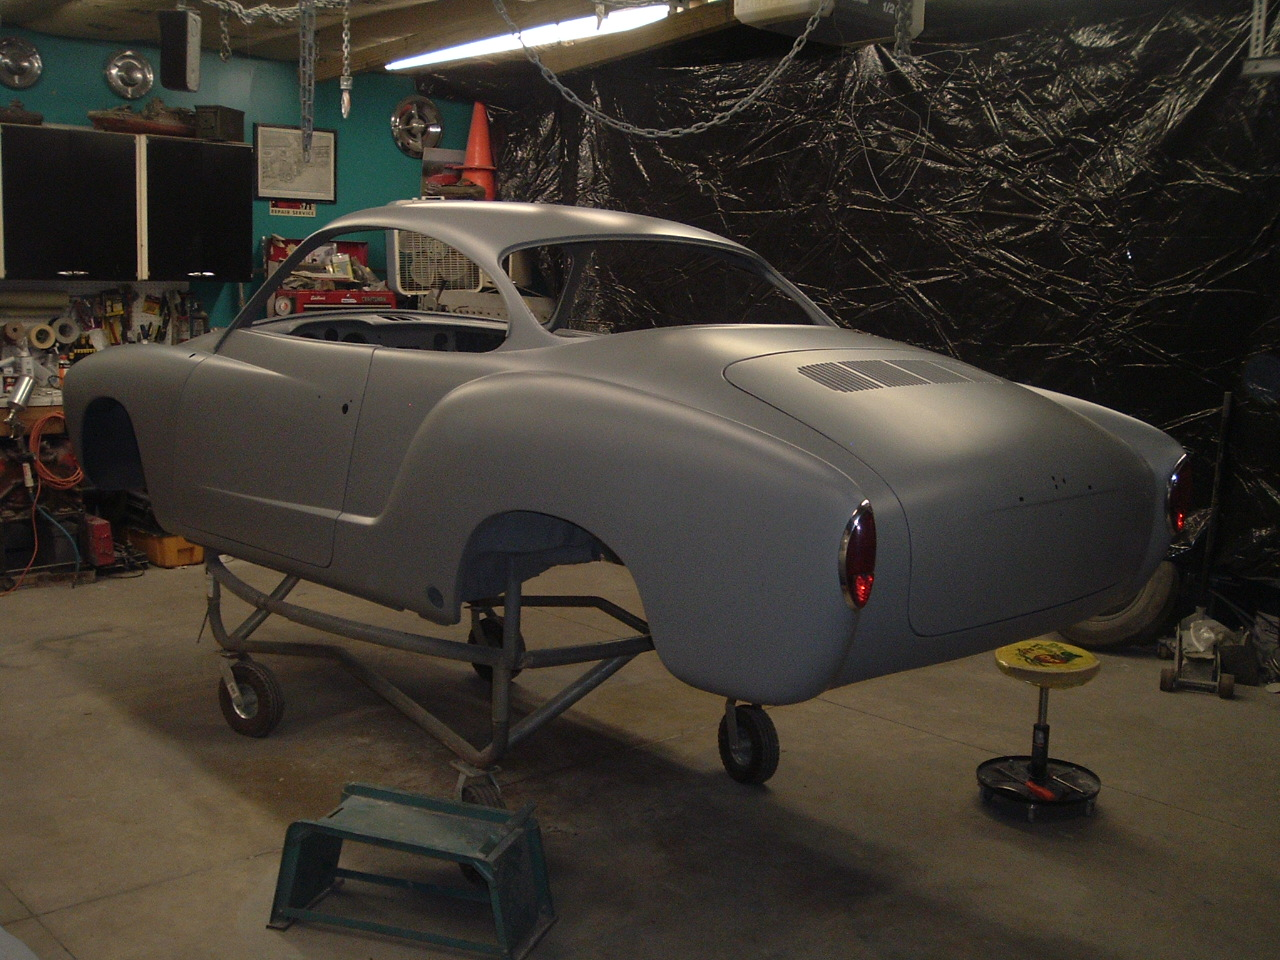 Lead Sled Metal Fabrication